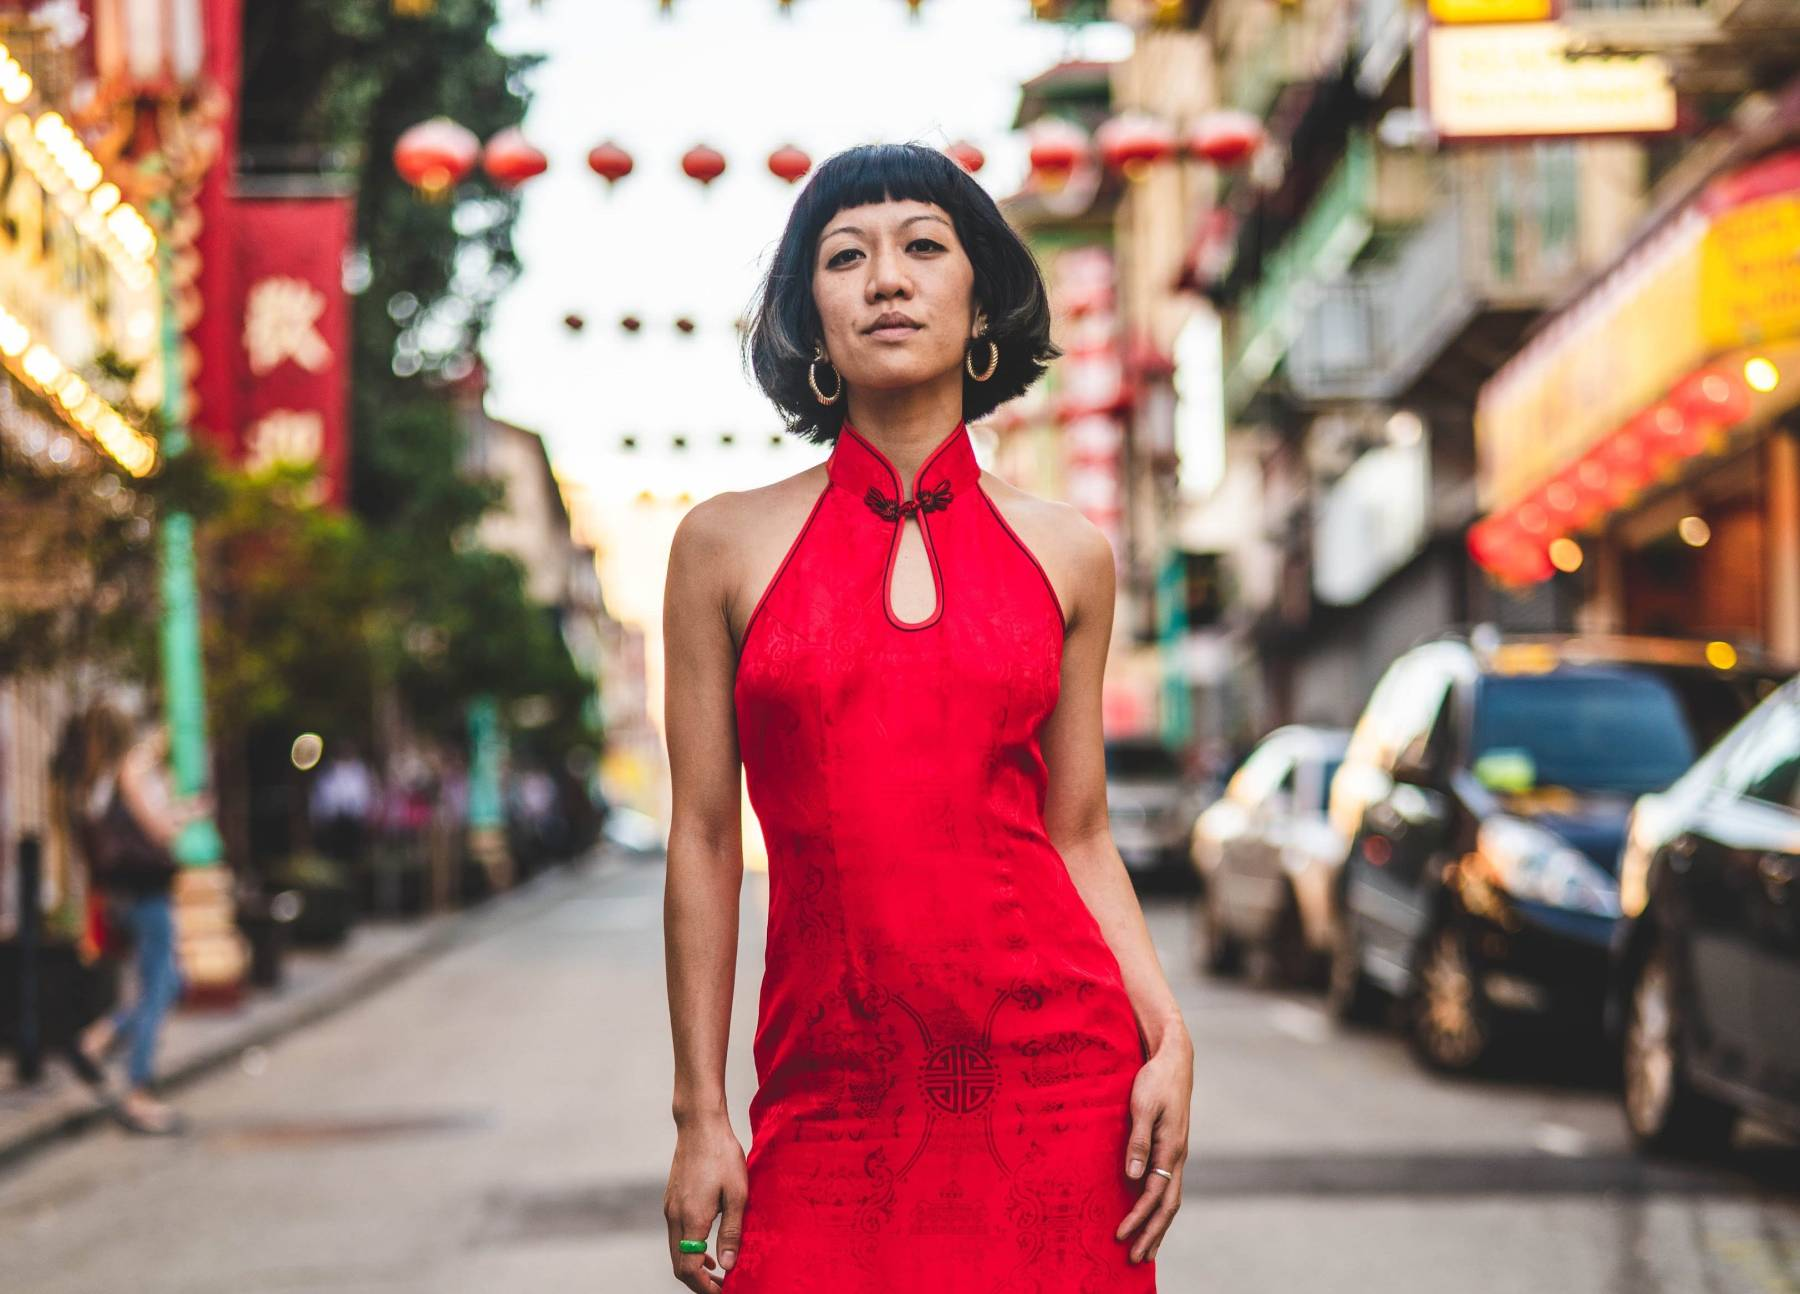 Rochelle Kwan, a Chinese-American woman with short black hair, stands in the middle of a San Francisco Chinatown street looking down at the camera with a soft smile. She wears a long, red cheongsam dress, black boots, gold hoop earrings, and a jade ring. In the background are rows of hanging red lanterns, neon signs with Chinese characters, and parked cars. This photo was taken by her sister, Elodie Kwan.